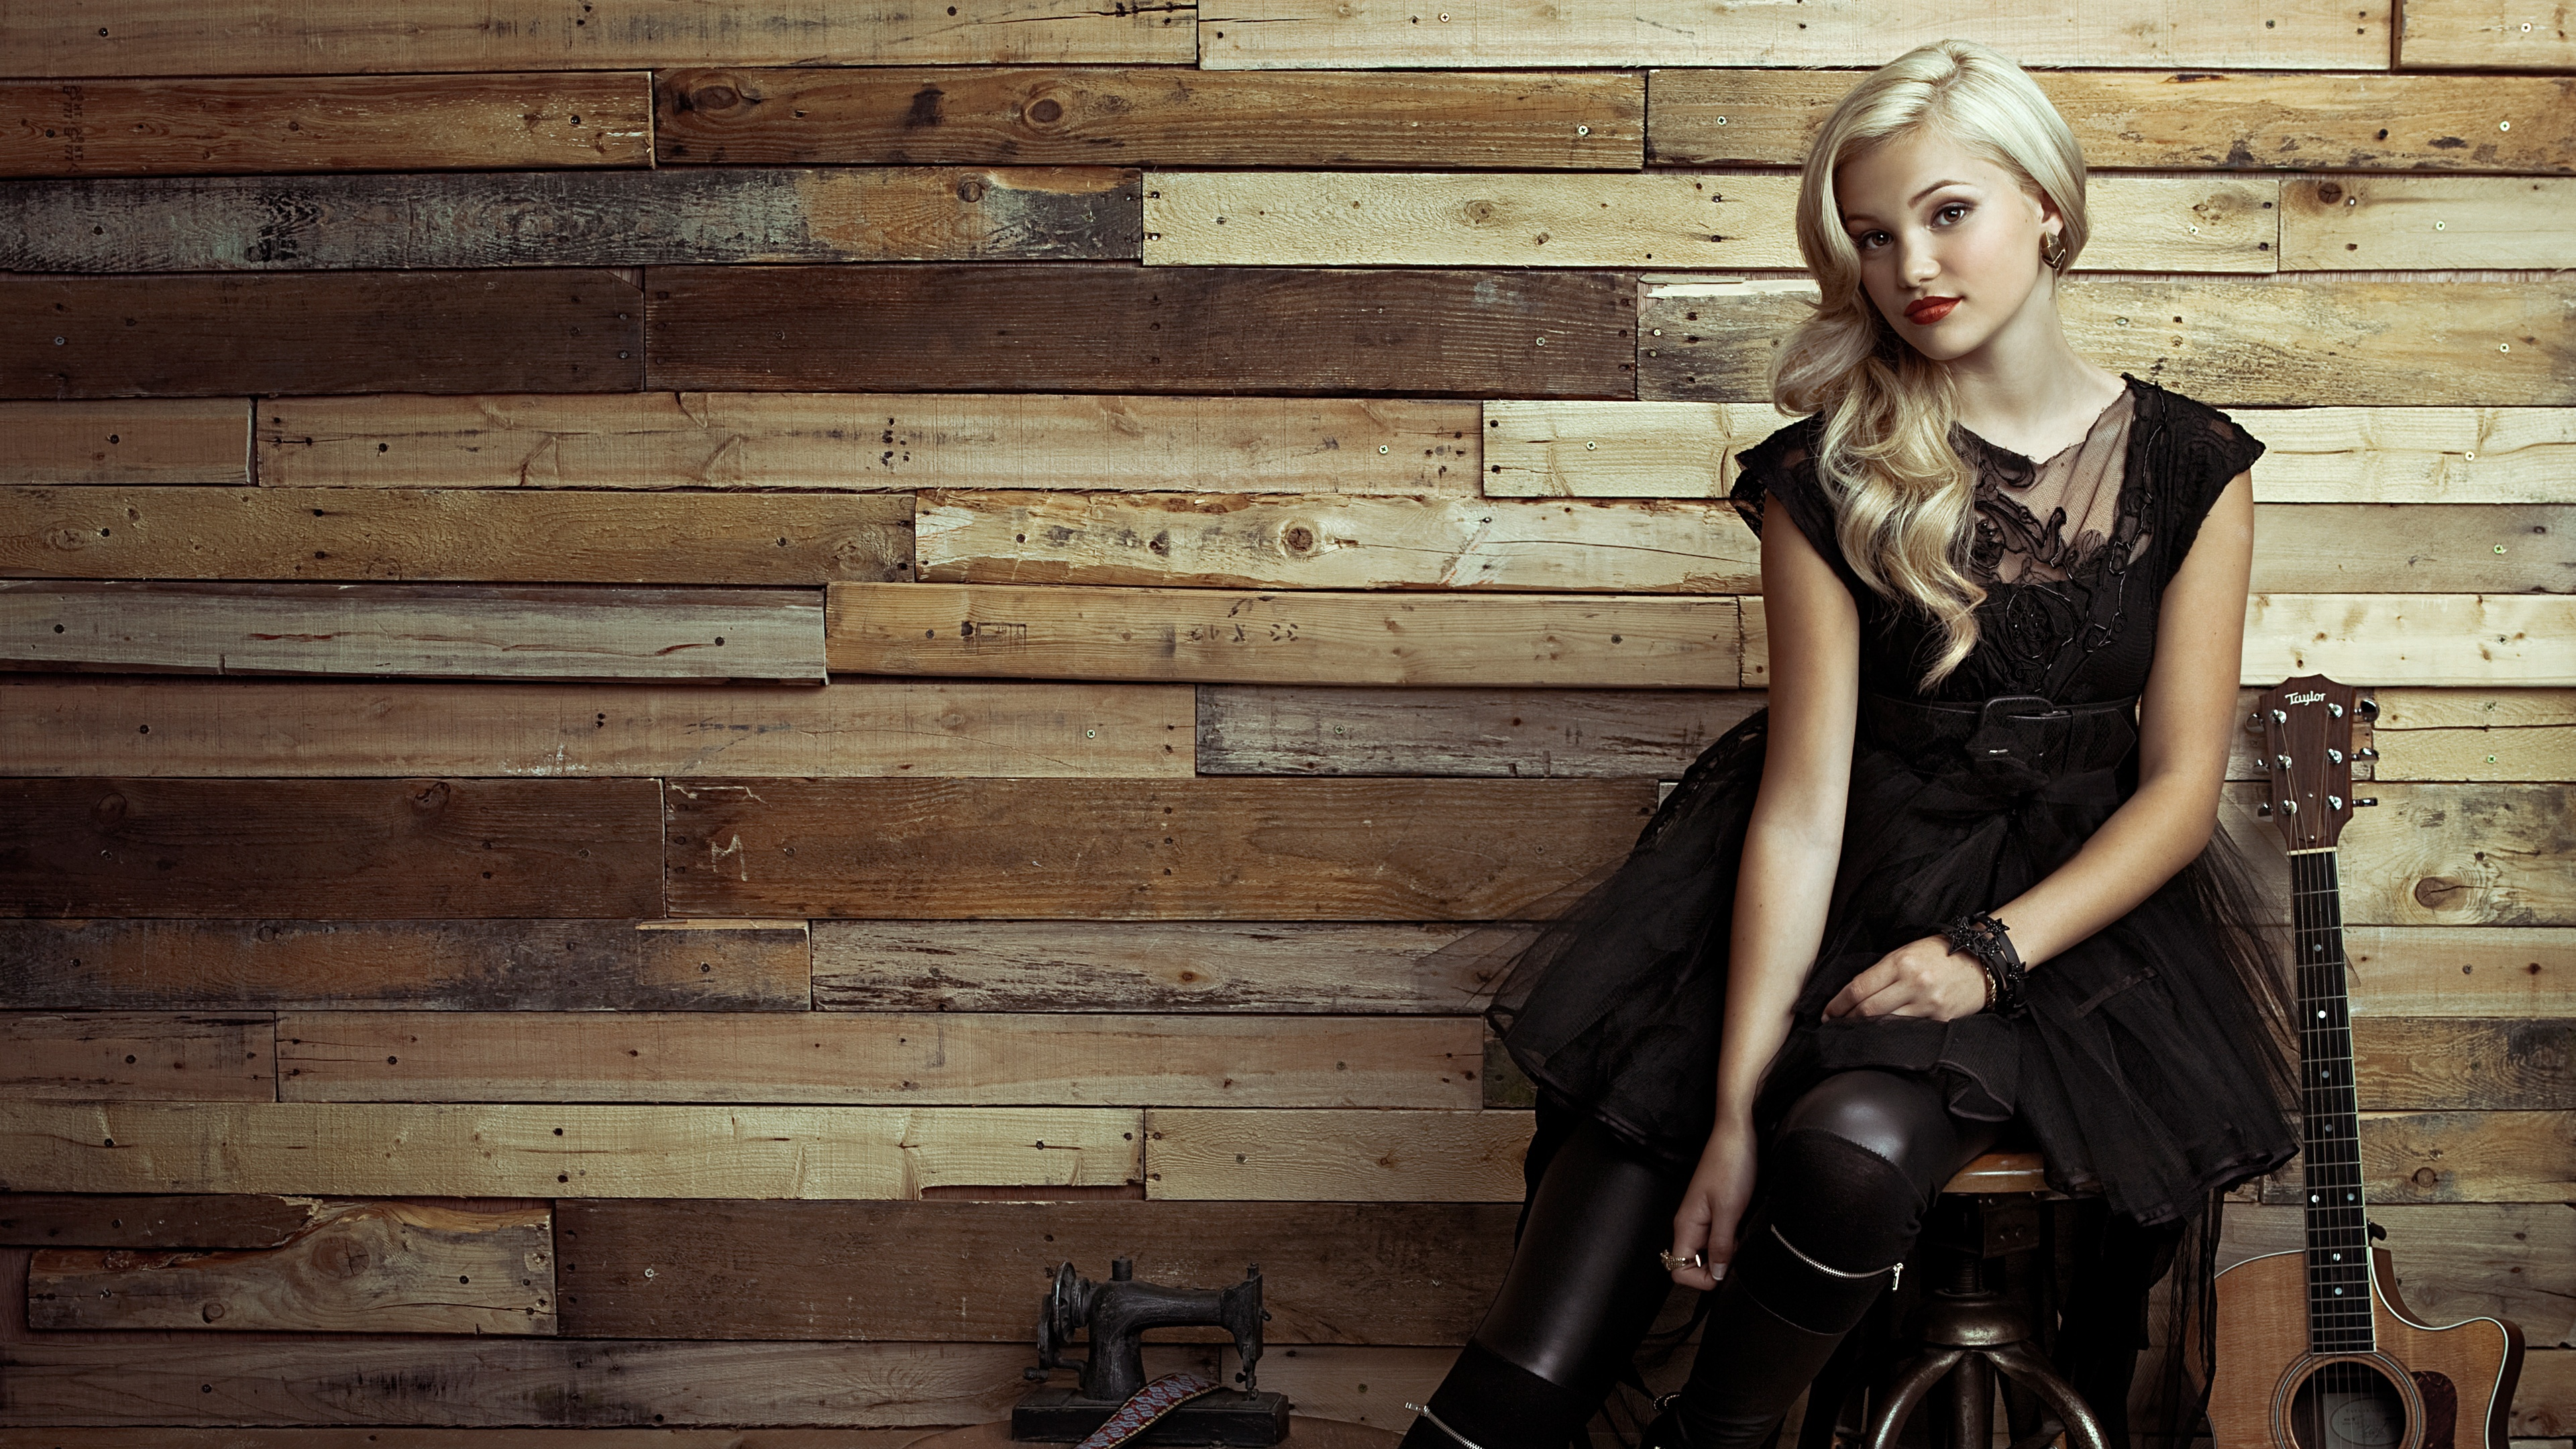 3840x2160 - Olivia Holt Wallpapers 19